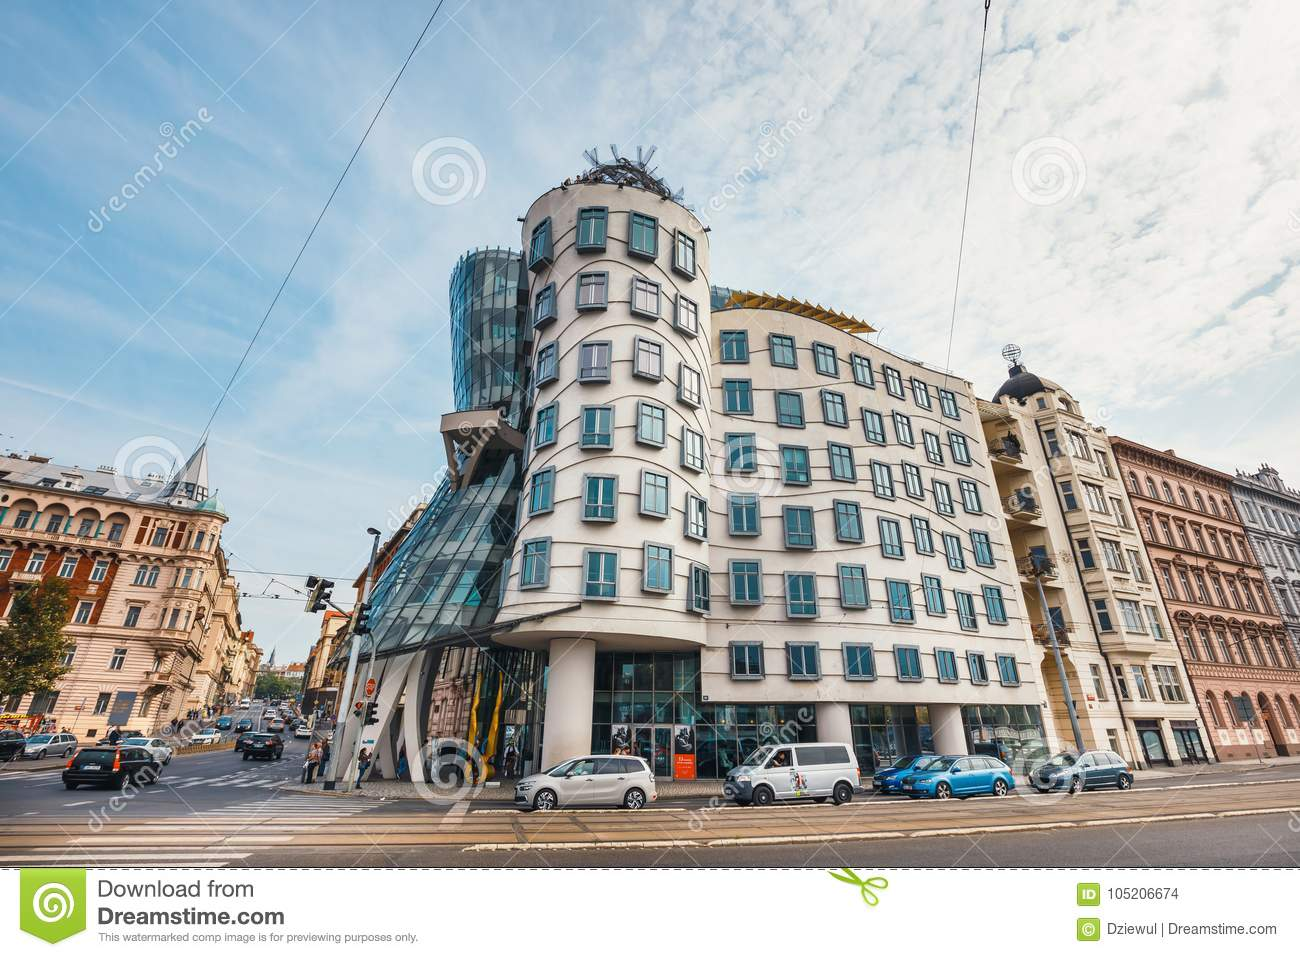 Dancing House - modern building designed by Vlado Milunic and Frank O. Gehry, Prague